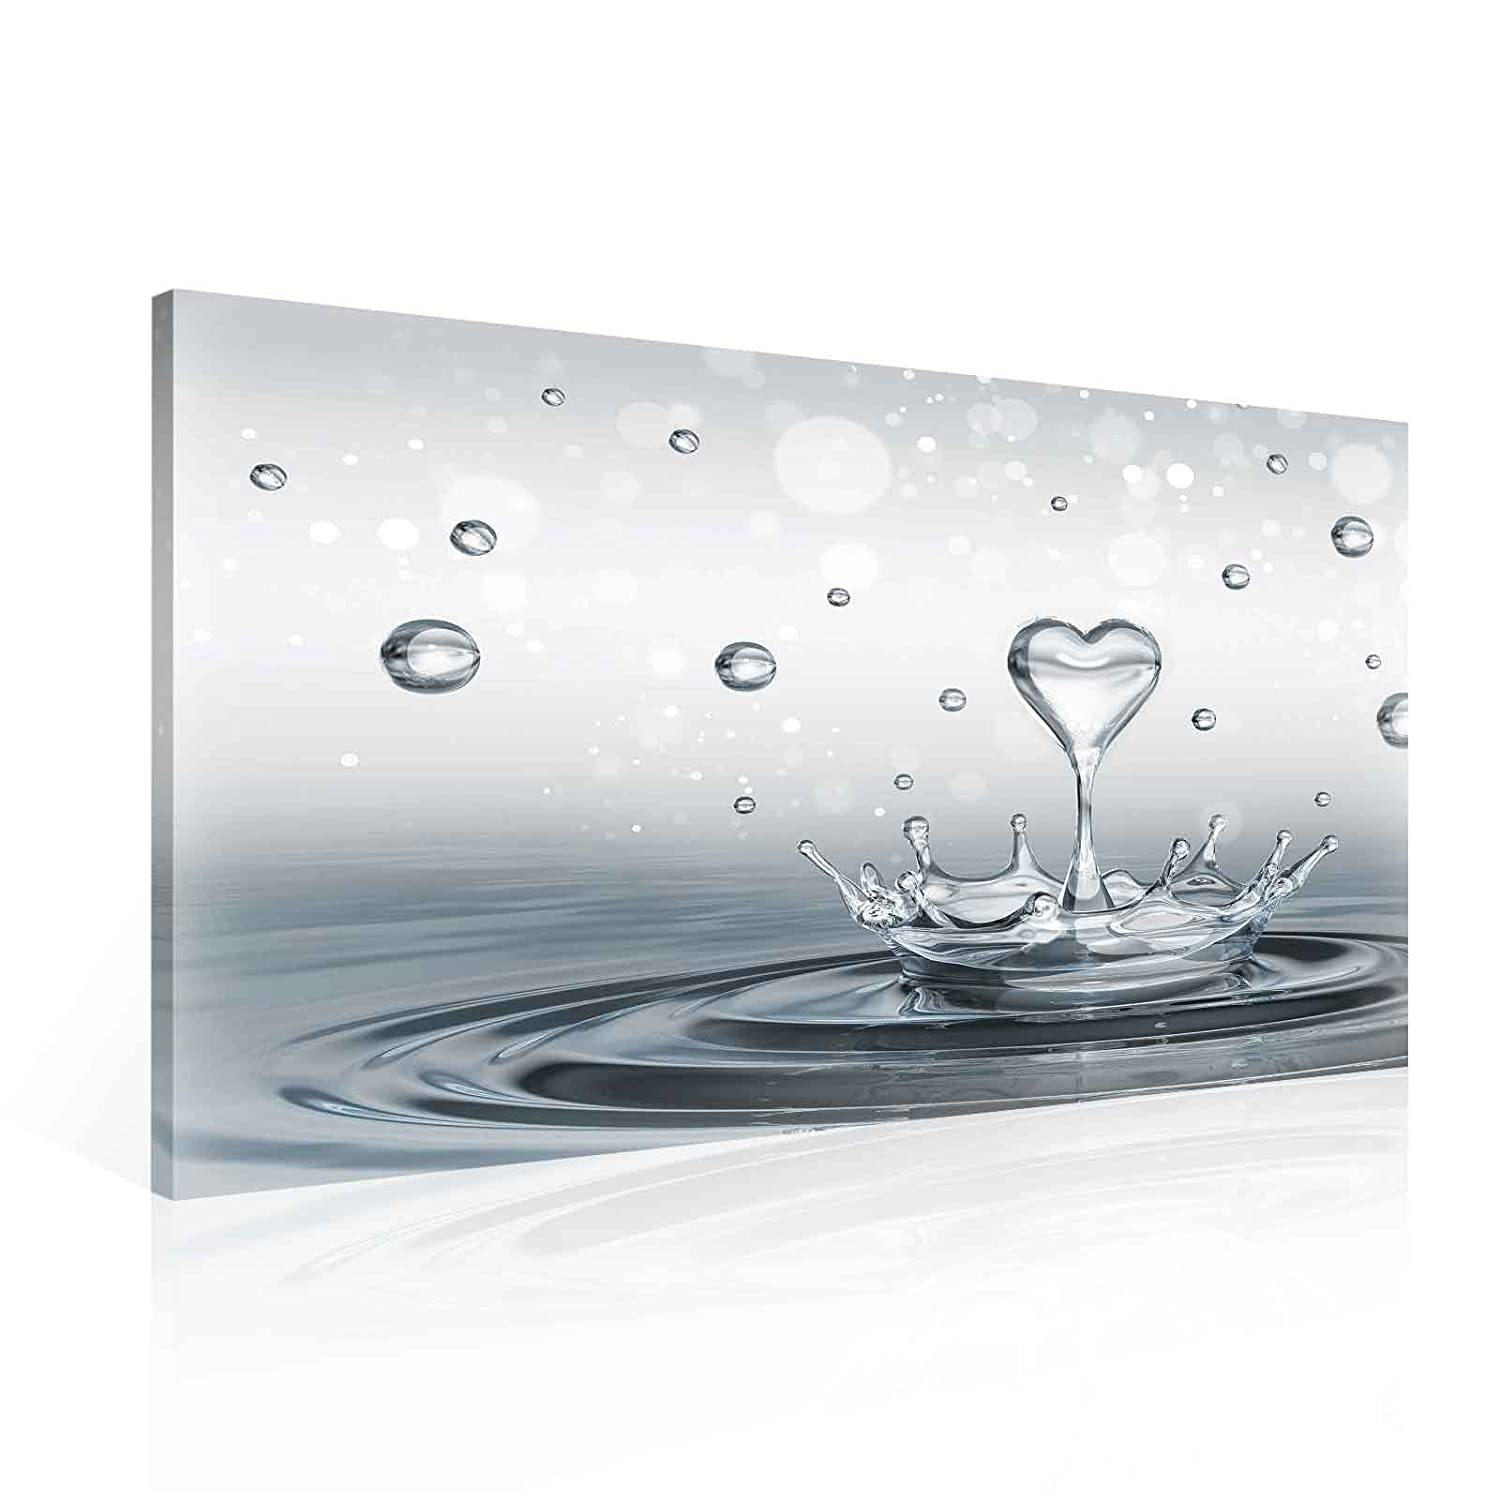 Drops Heart Water Canvas Print - Photo Print - O1 - 100cm x 75cm - Premium 260gsm Canvas, Hand-Finished, Solid MDF Frame - 2.6cm Thick - Integrated Hanging Hook - Nature, Forest, Flowers Collection - (PP2529O1) Consalnet